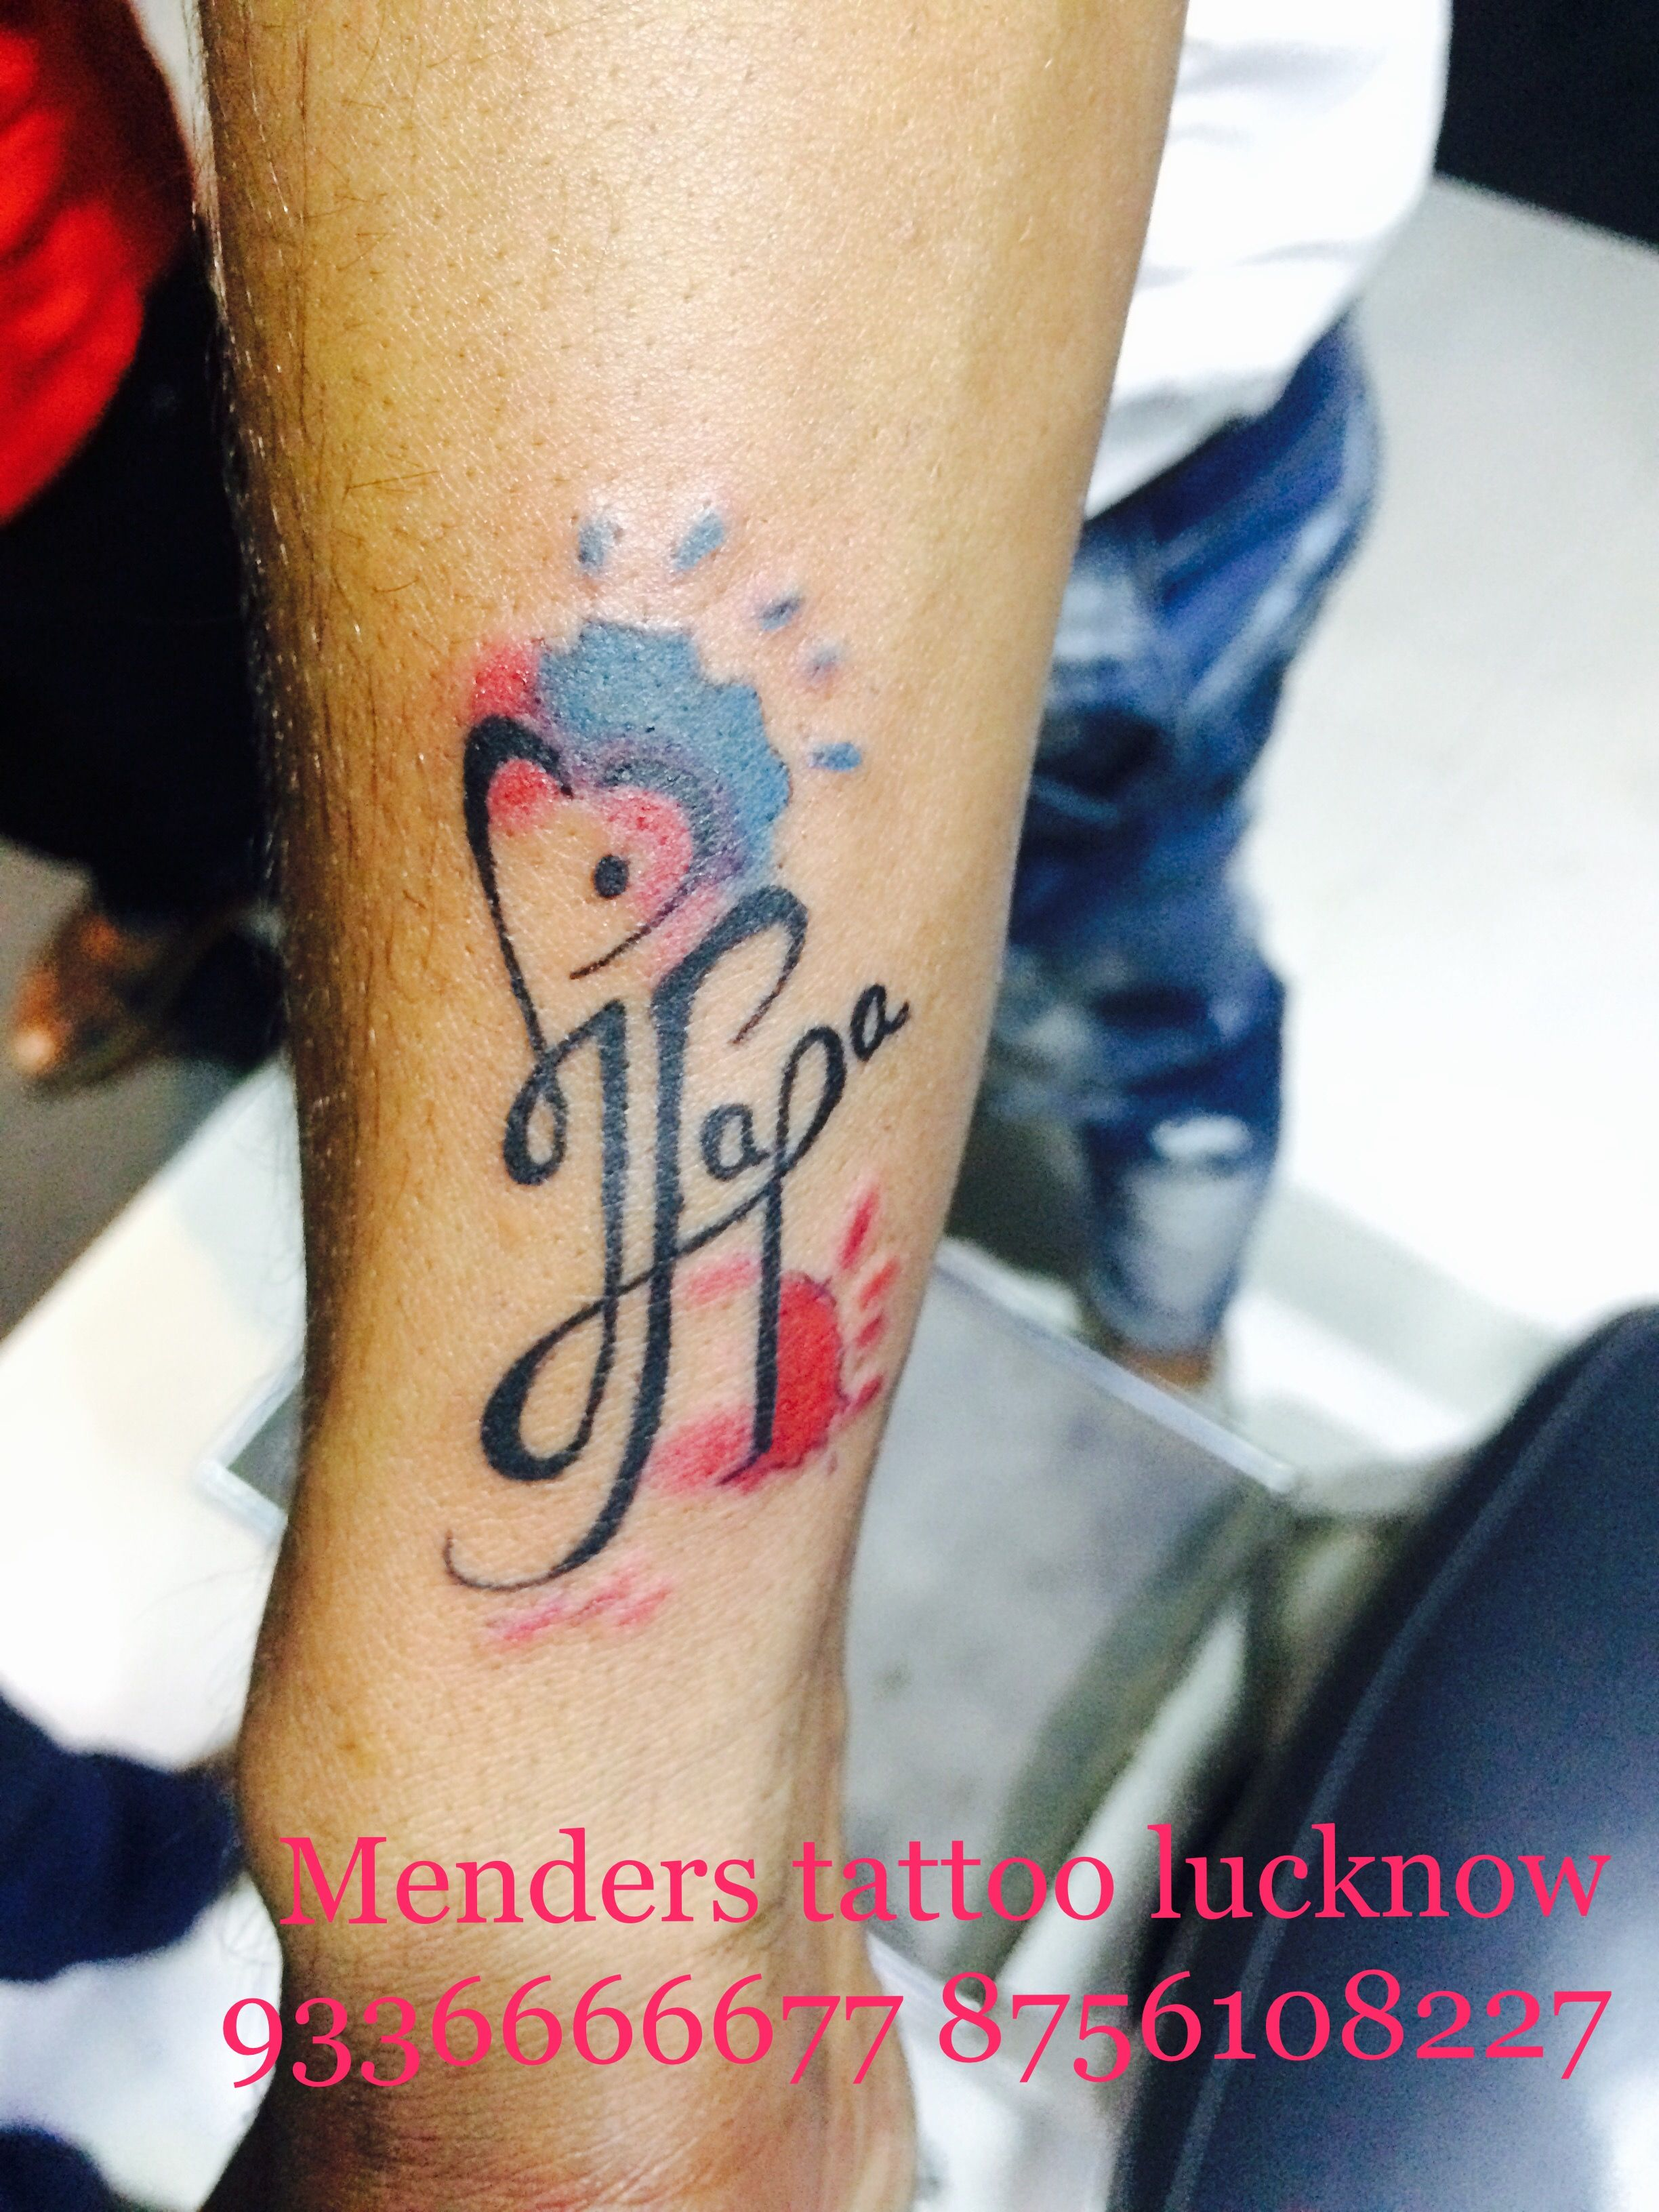 Maa Paa Water Colours Tattoo Maa Paa Small Tattoo Tattoo In